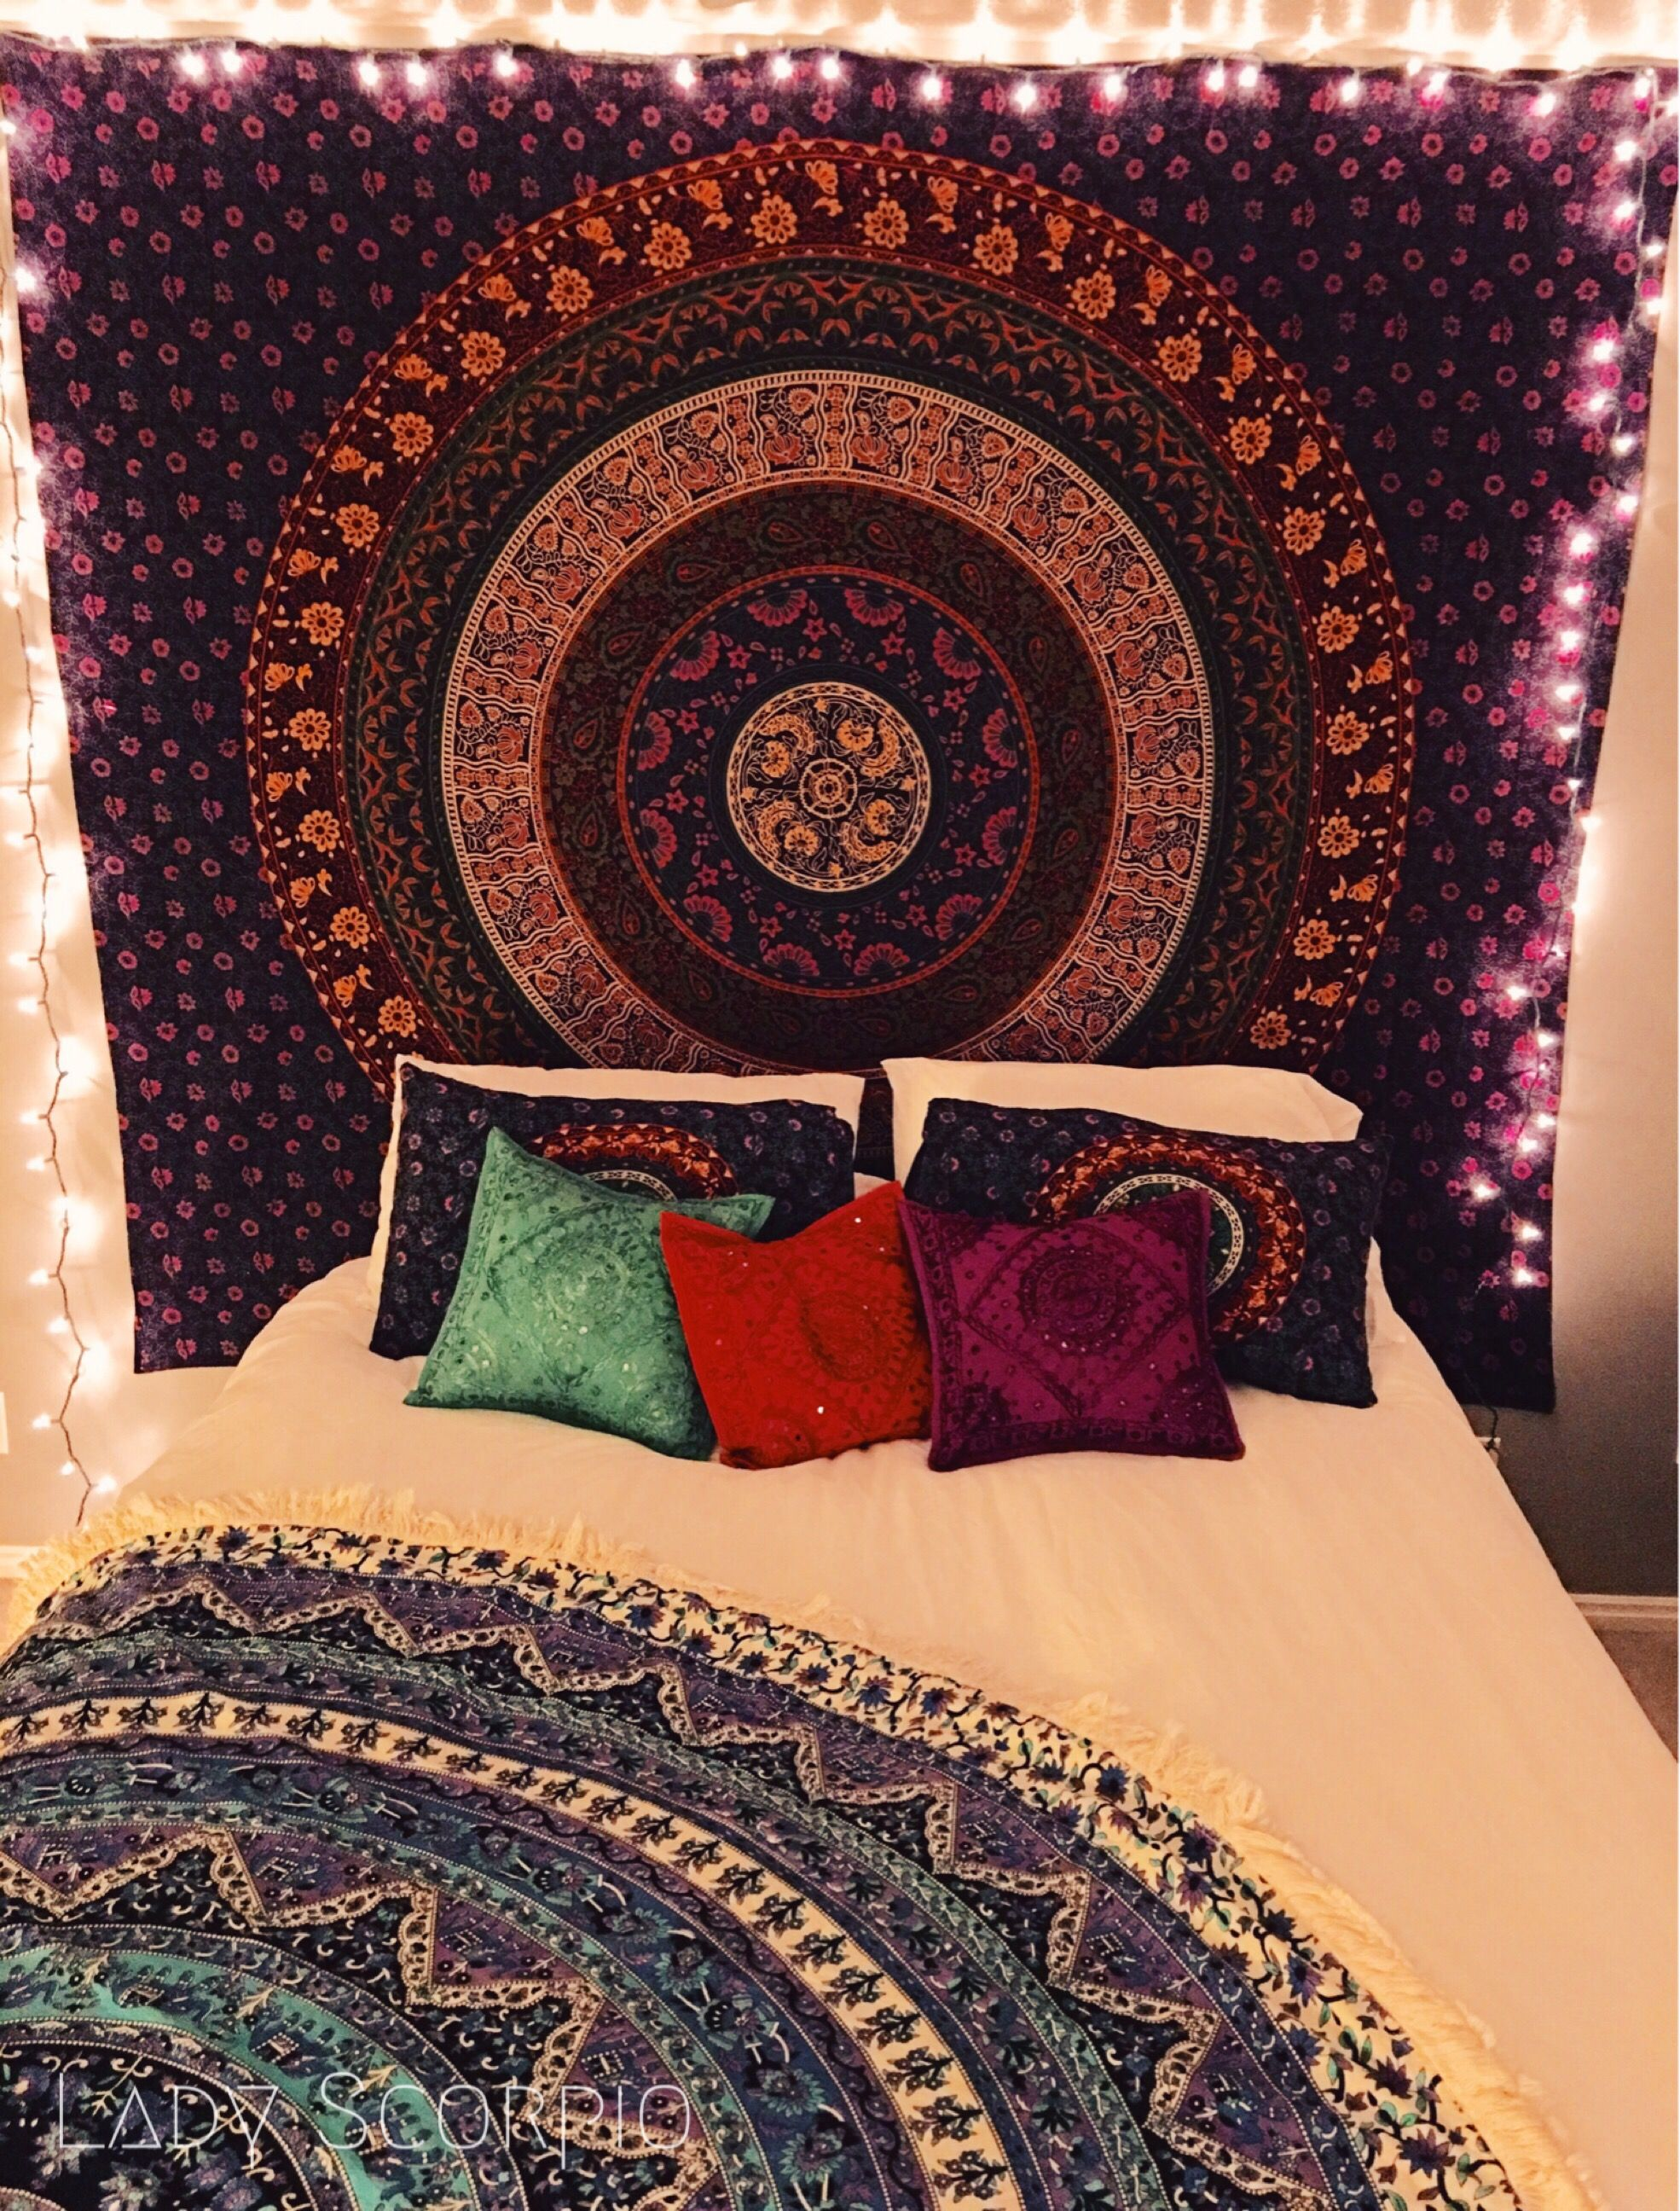 Lady Scorpio Bohemian Bedroom, filled with Gypsy Mandala ...